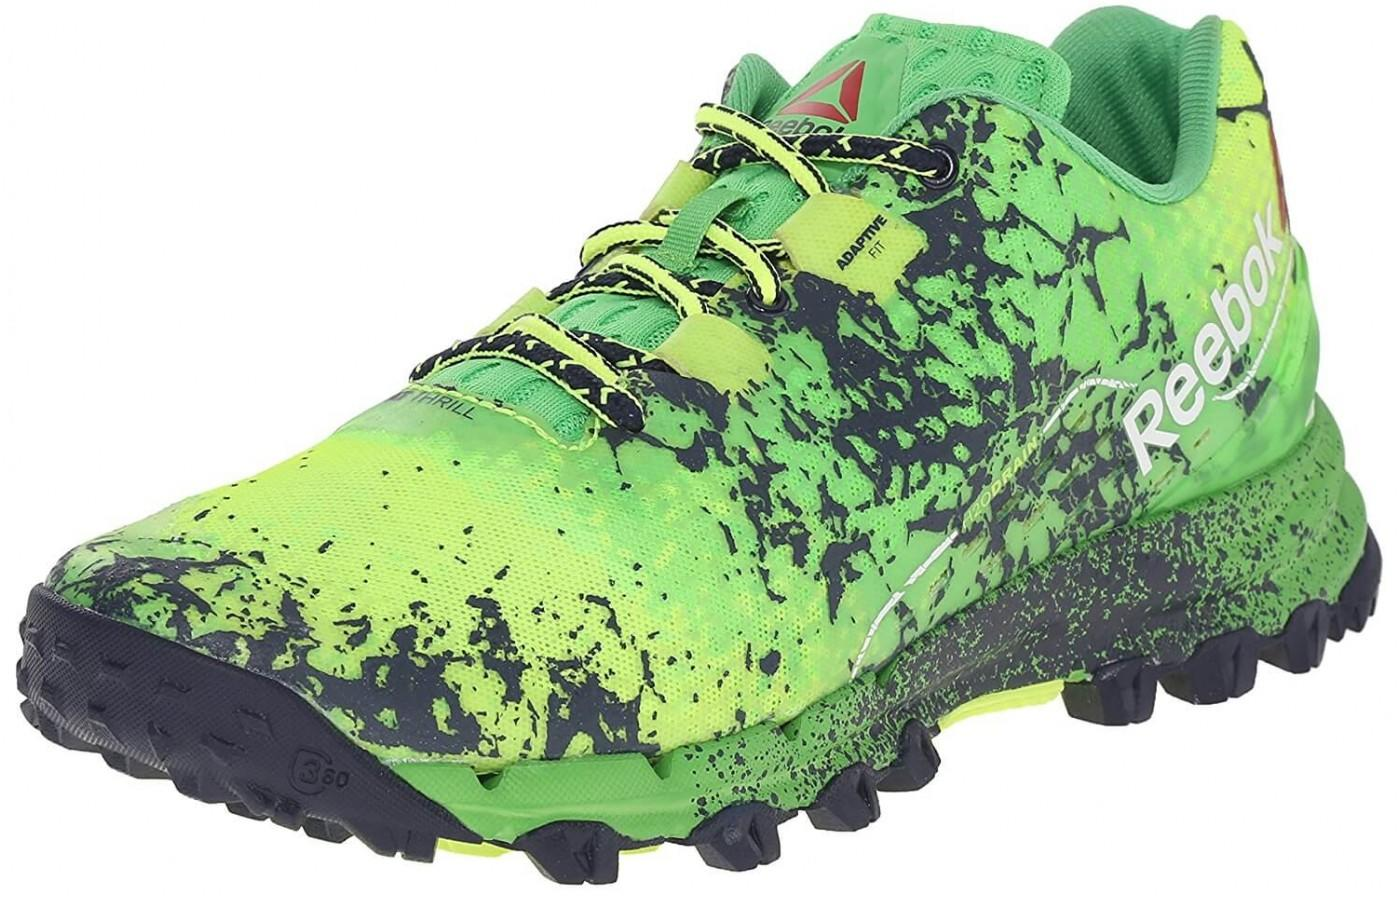 Reebok All Terrain Thrill - To Buy or Not in Mar 2019  809a9d73e